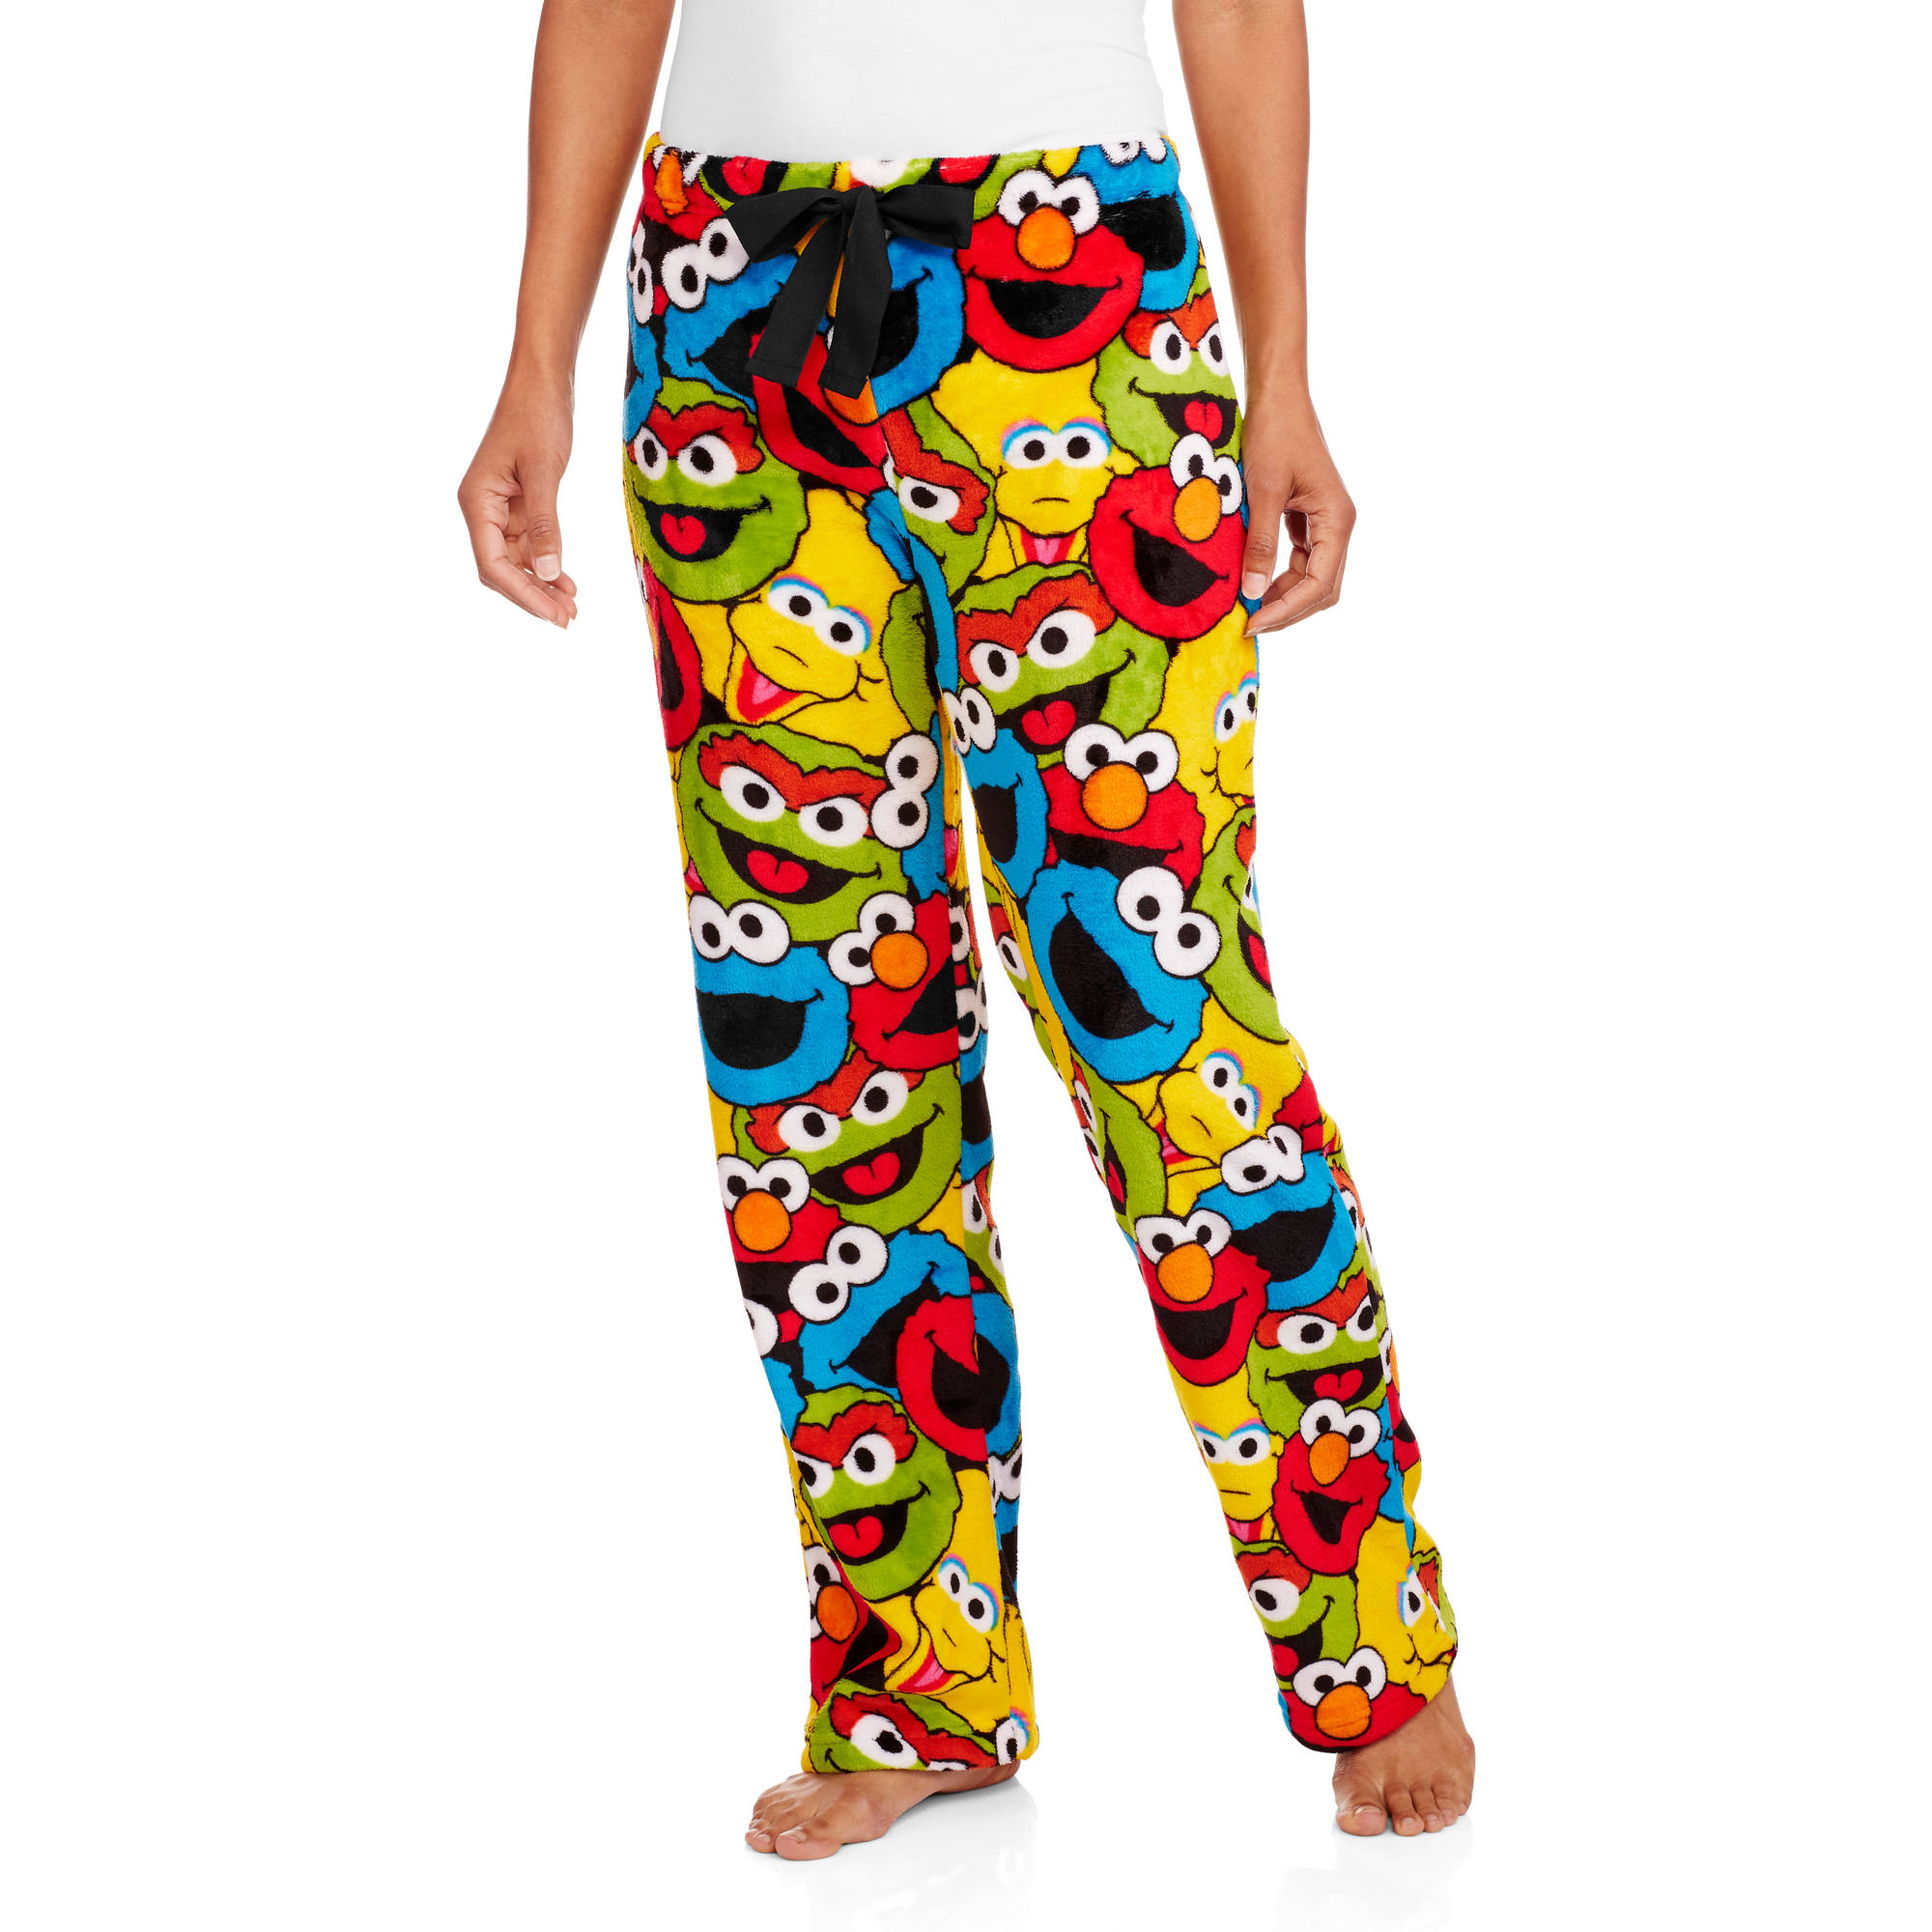 Women's Licensed Pajama Super Minky Plush Fleece Sleep Pants